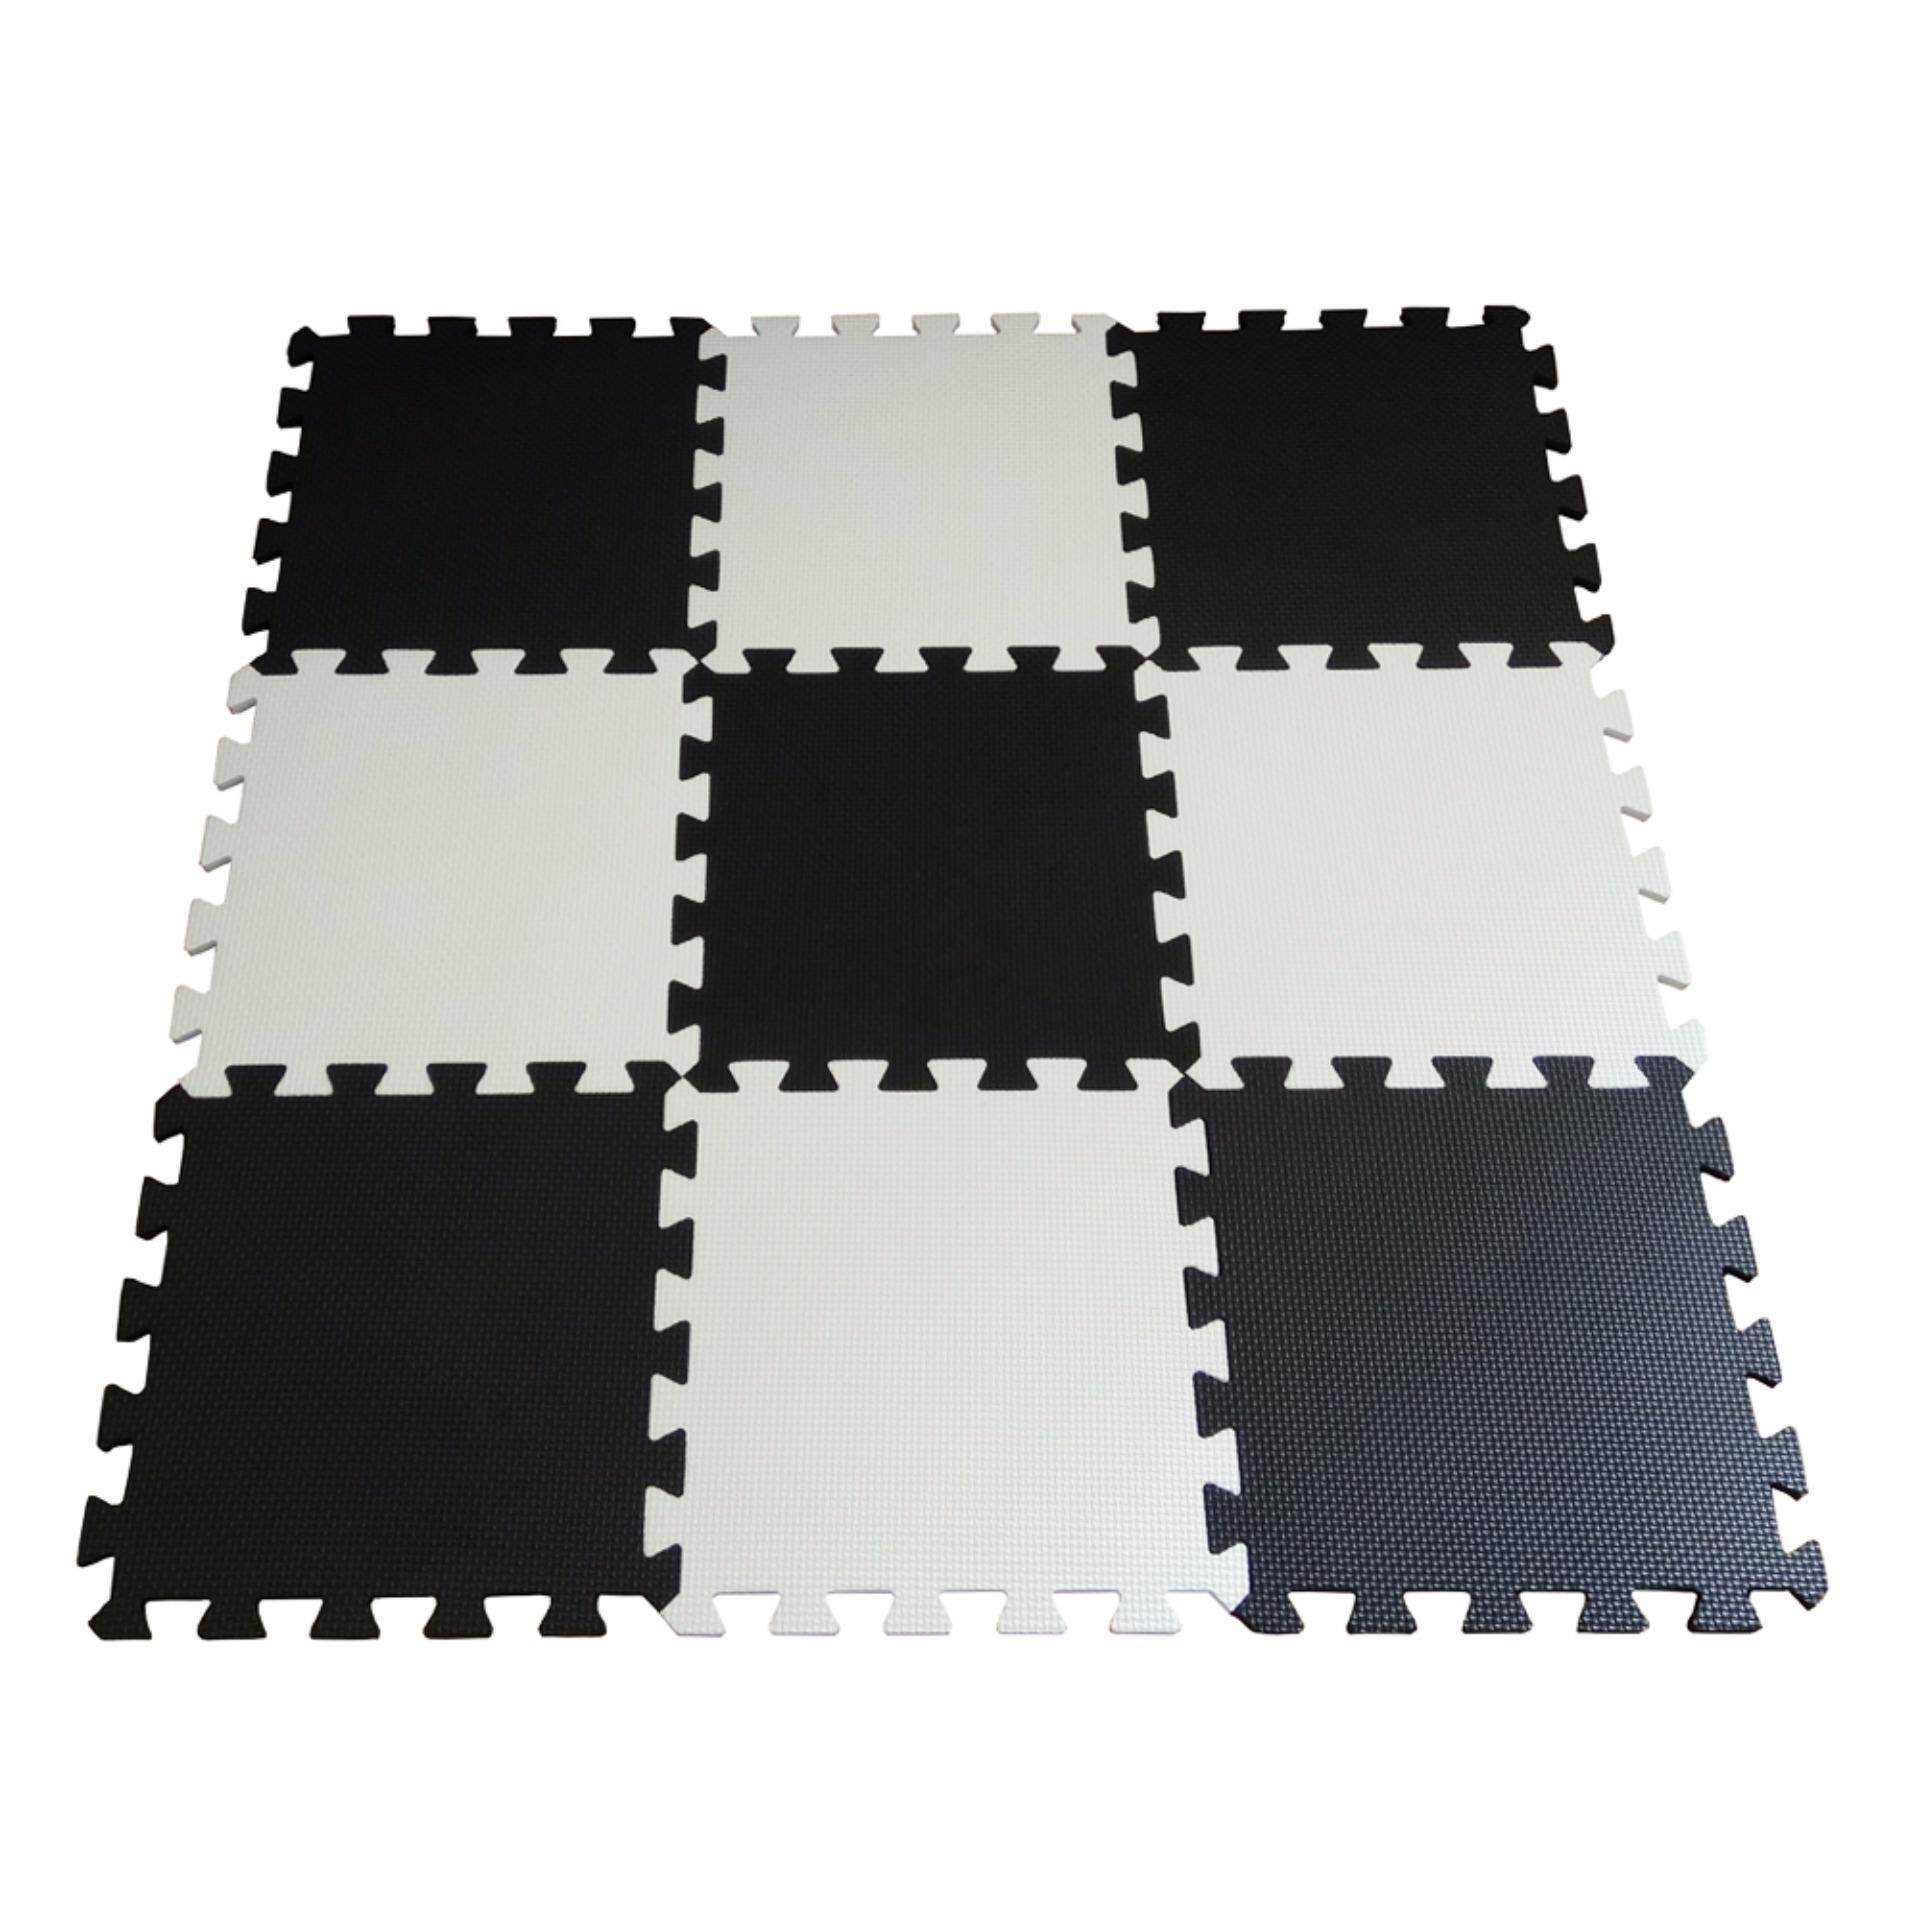 giant delivery itm large contact mats game mat roll puzzle sec fun payment pieces jigsaw storage us returns description easy jumbo up